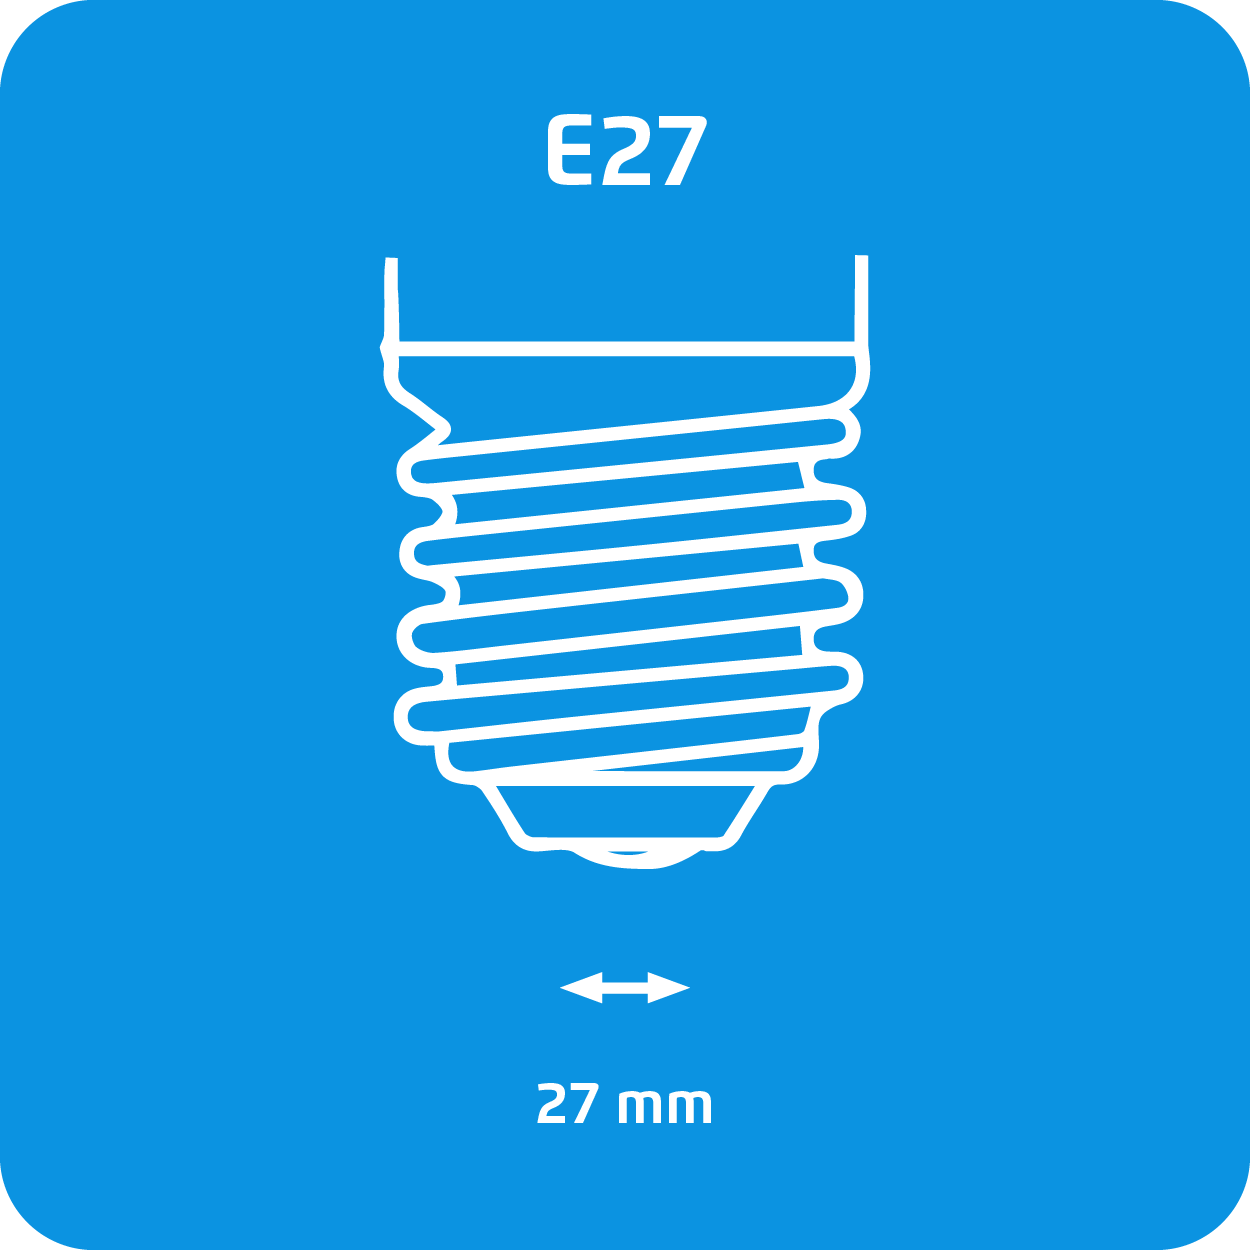 Philips ampoules led e27 230v online lampesdirect for Offerte lampadine a led e 27